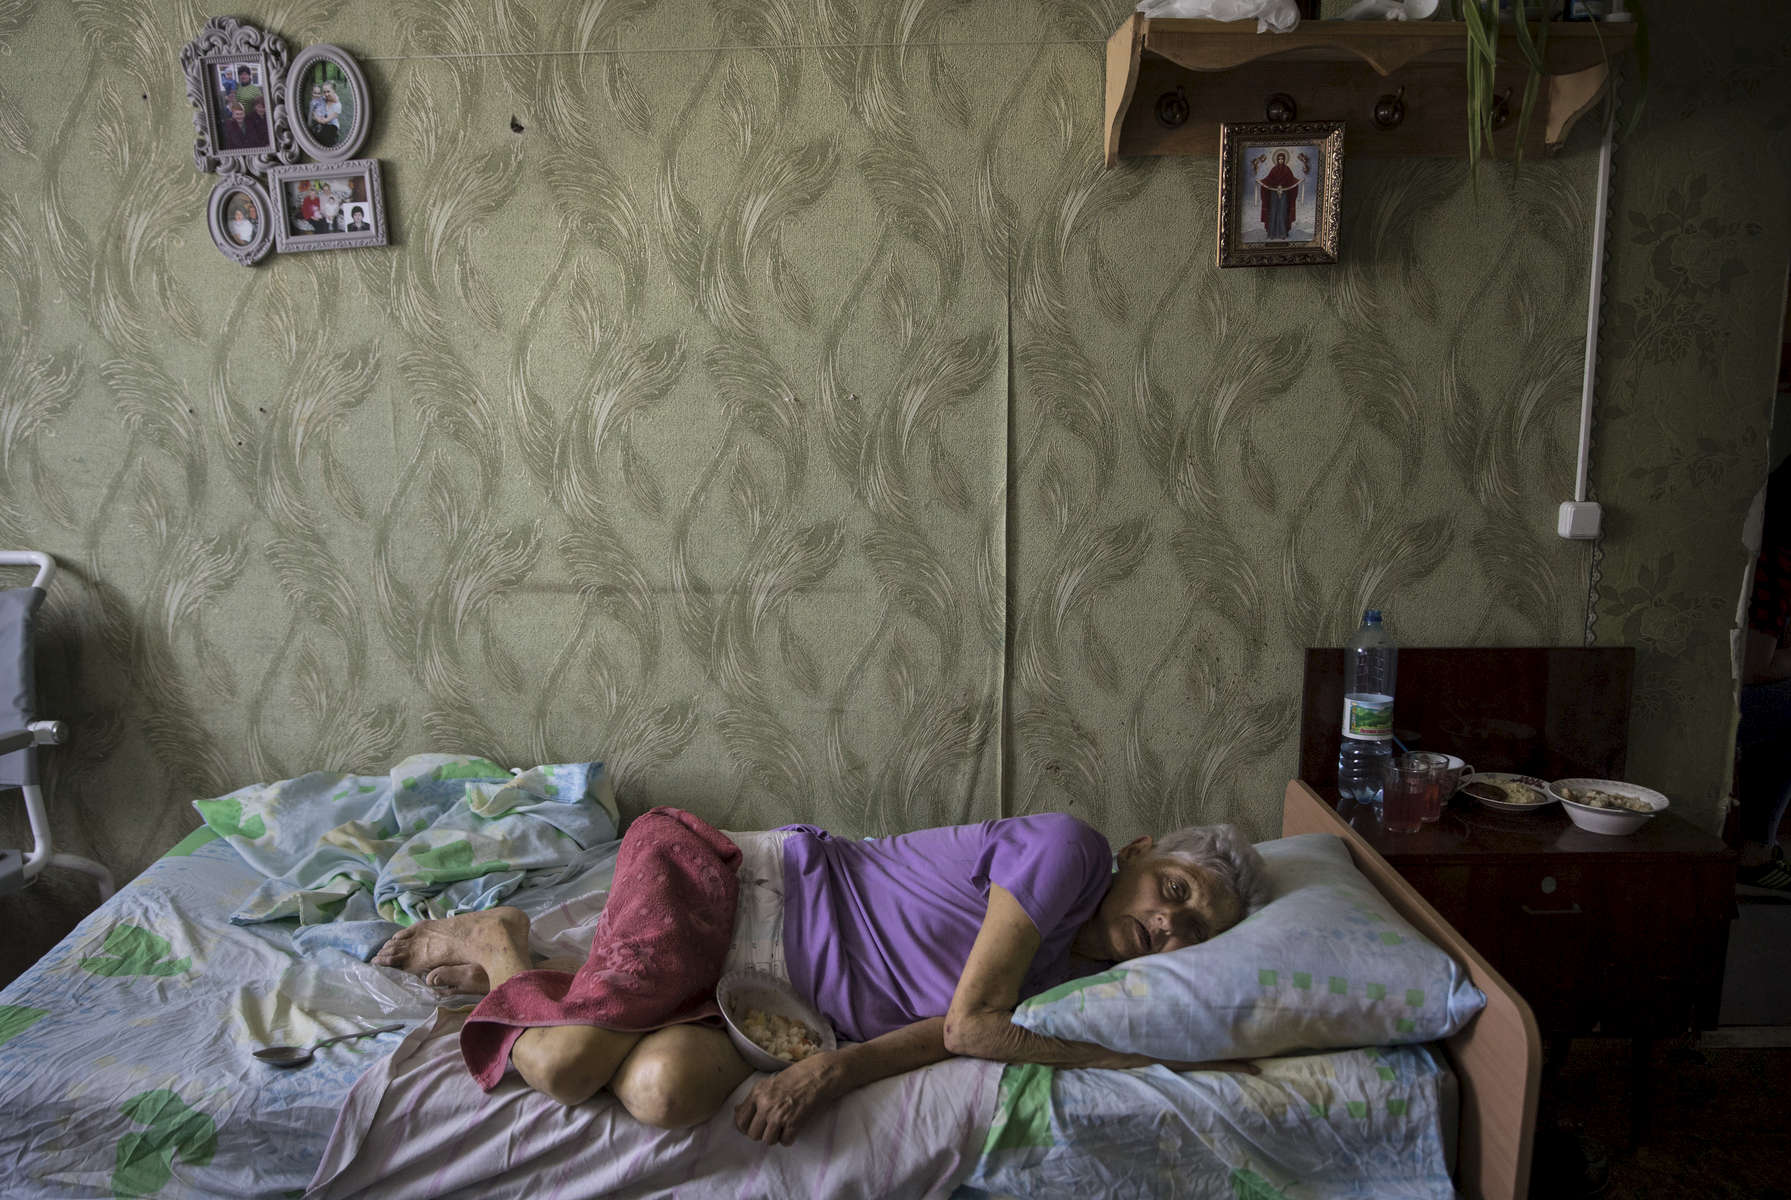 Valentina Iosipovna, age 76 lays in bed waiting for staff to feed her at the Druzhkovka nursing home.